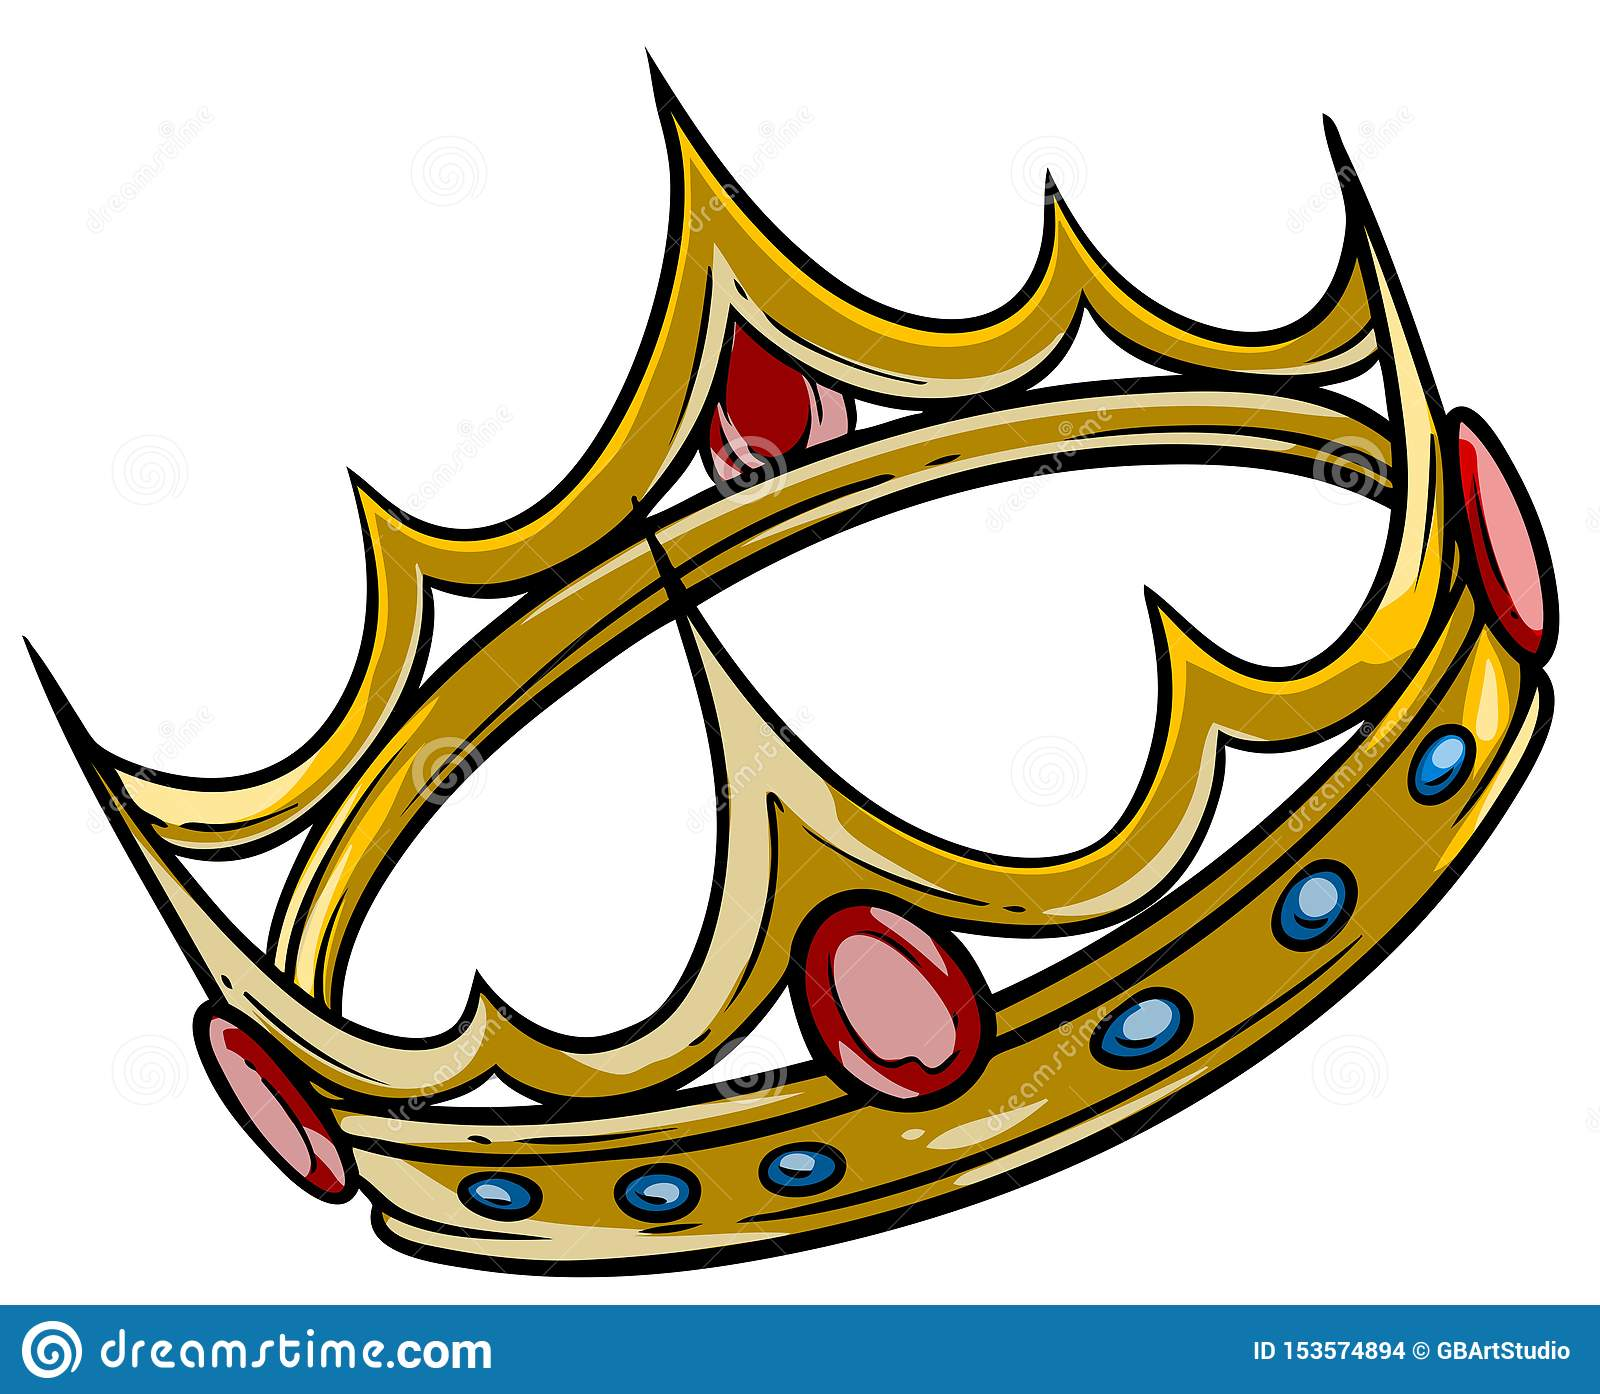 Cartoon King Crown Stock Illustrations 12 296 Cartoon King Crown Stock Illustrations Vectors Clipart Dreamstime Download free king crown vectors and other types of king crown graphics and clipart at freevector.com! https www dreamstime com cartoon golden royal king crown vector diamonds gems isolated white background icon vol image153574894